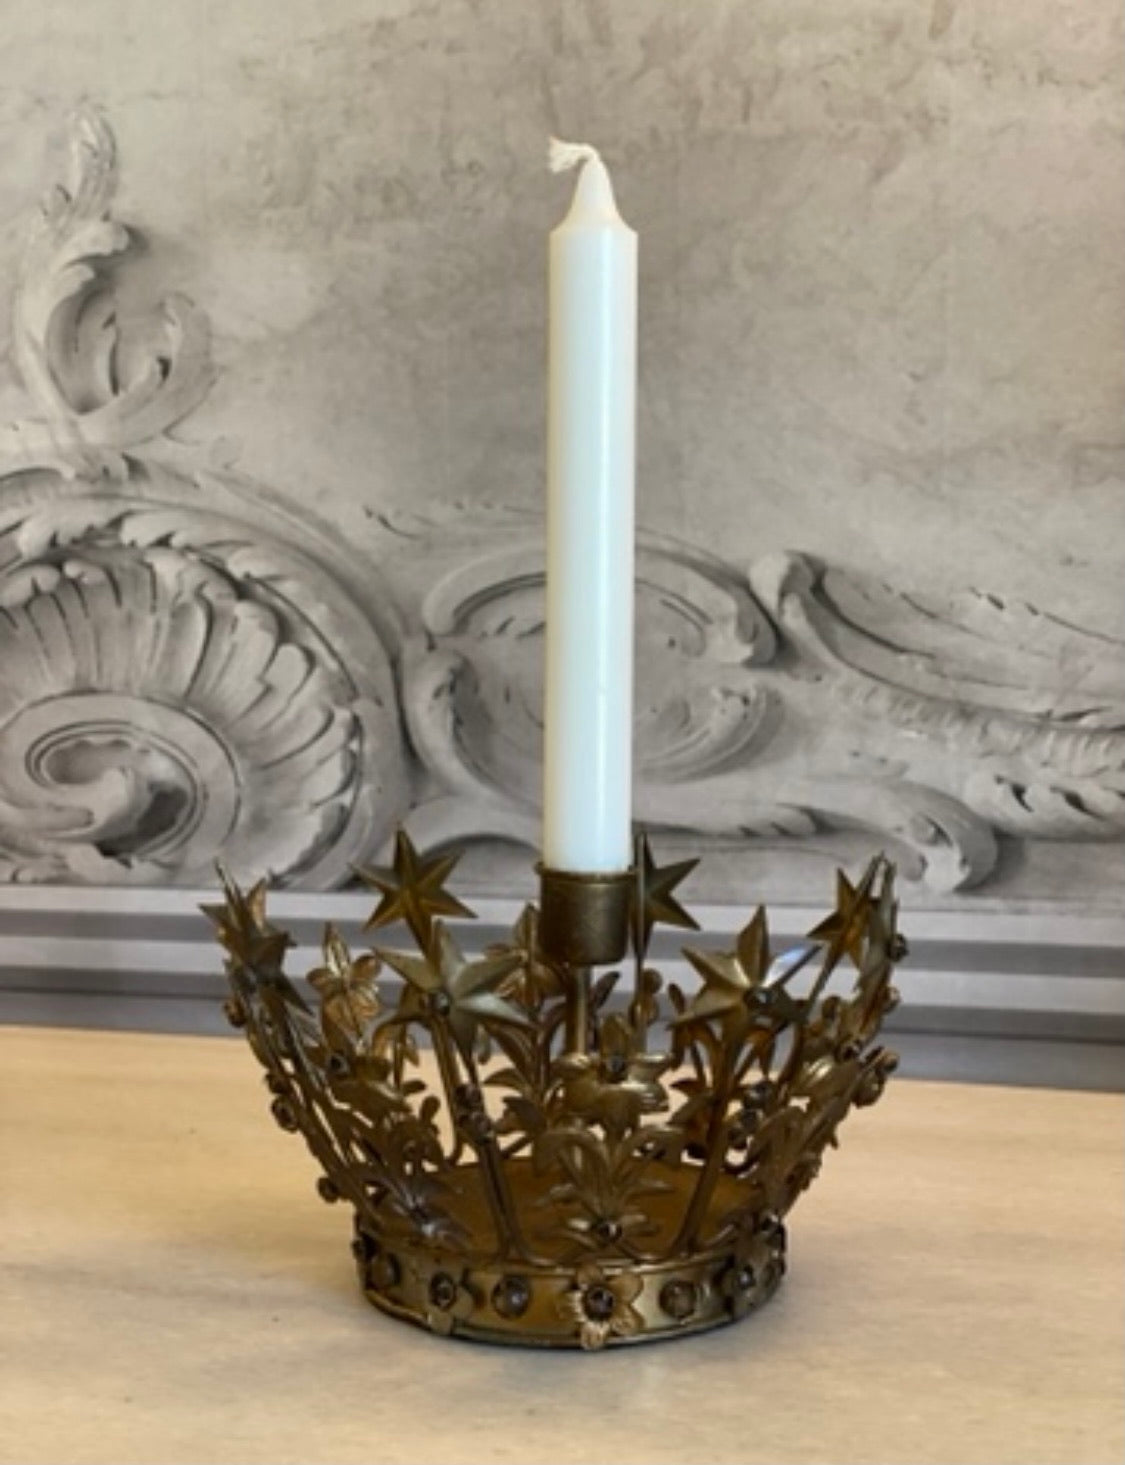 Victorian Crown Candle Holder - 2 Designs